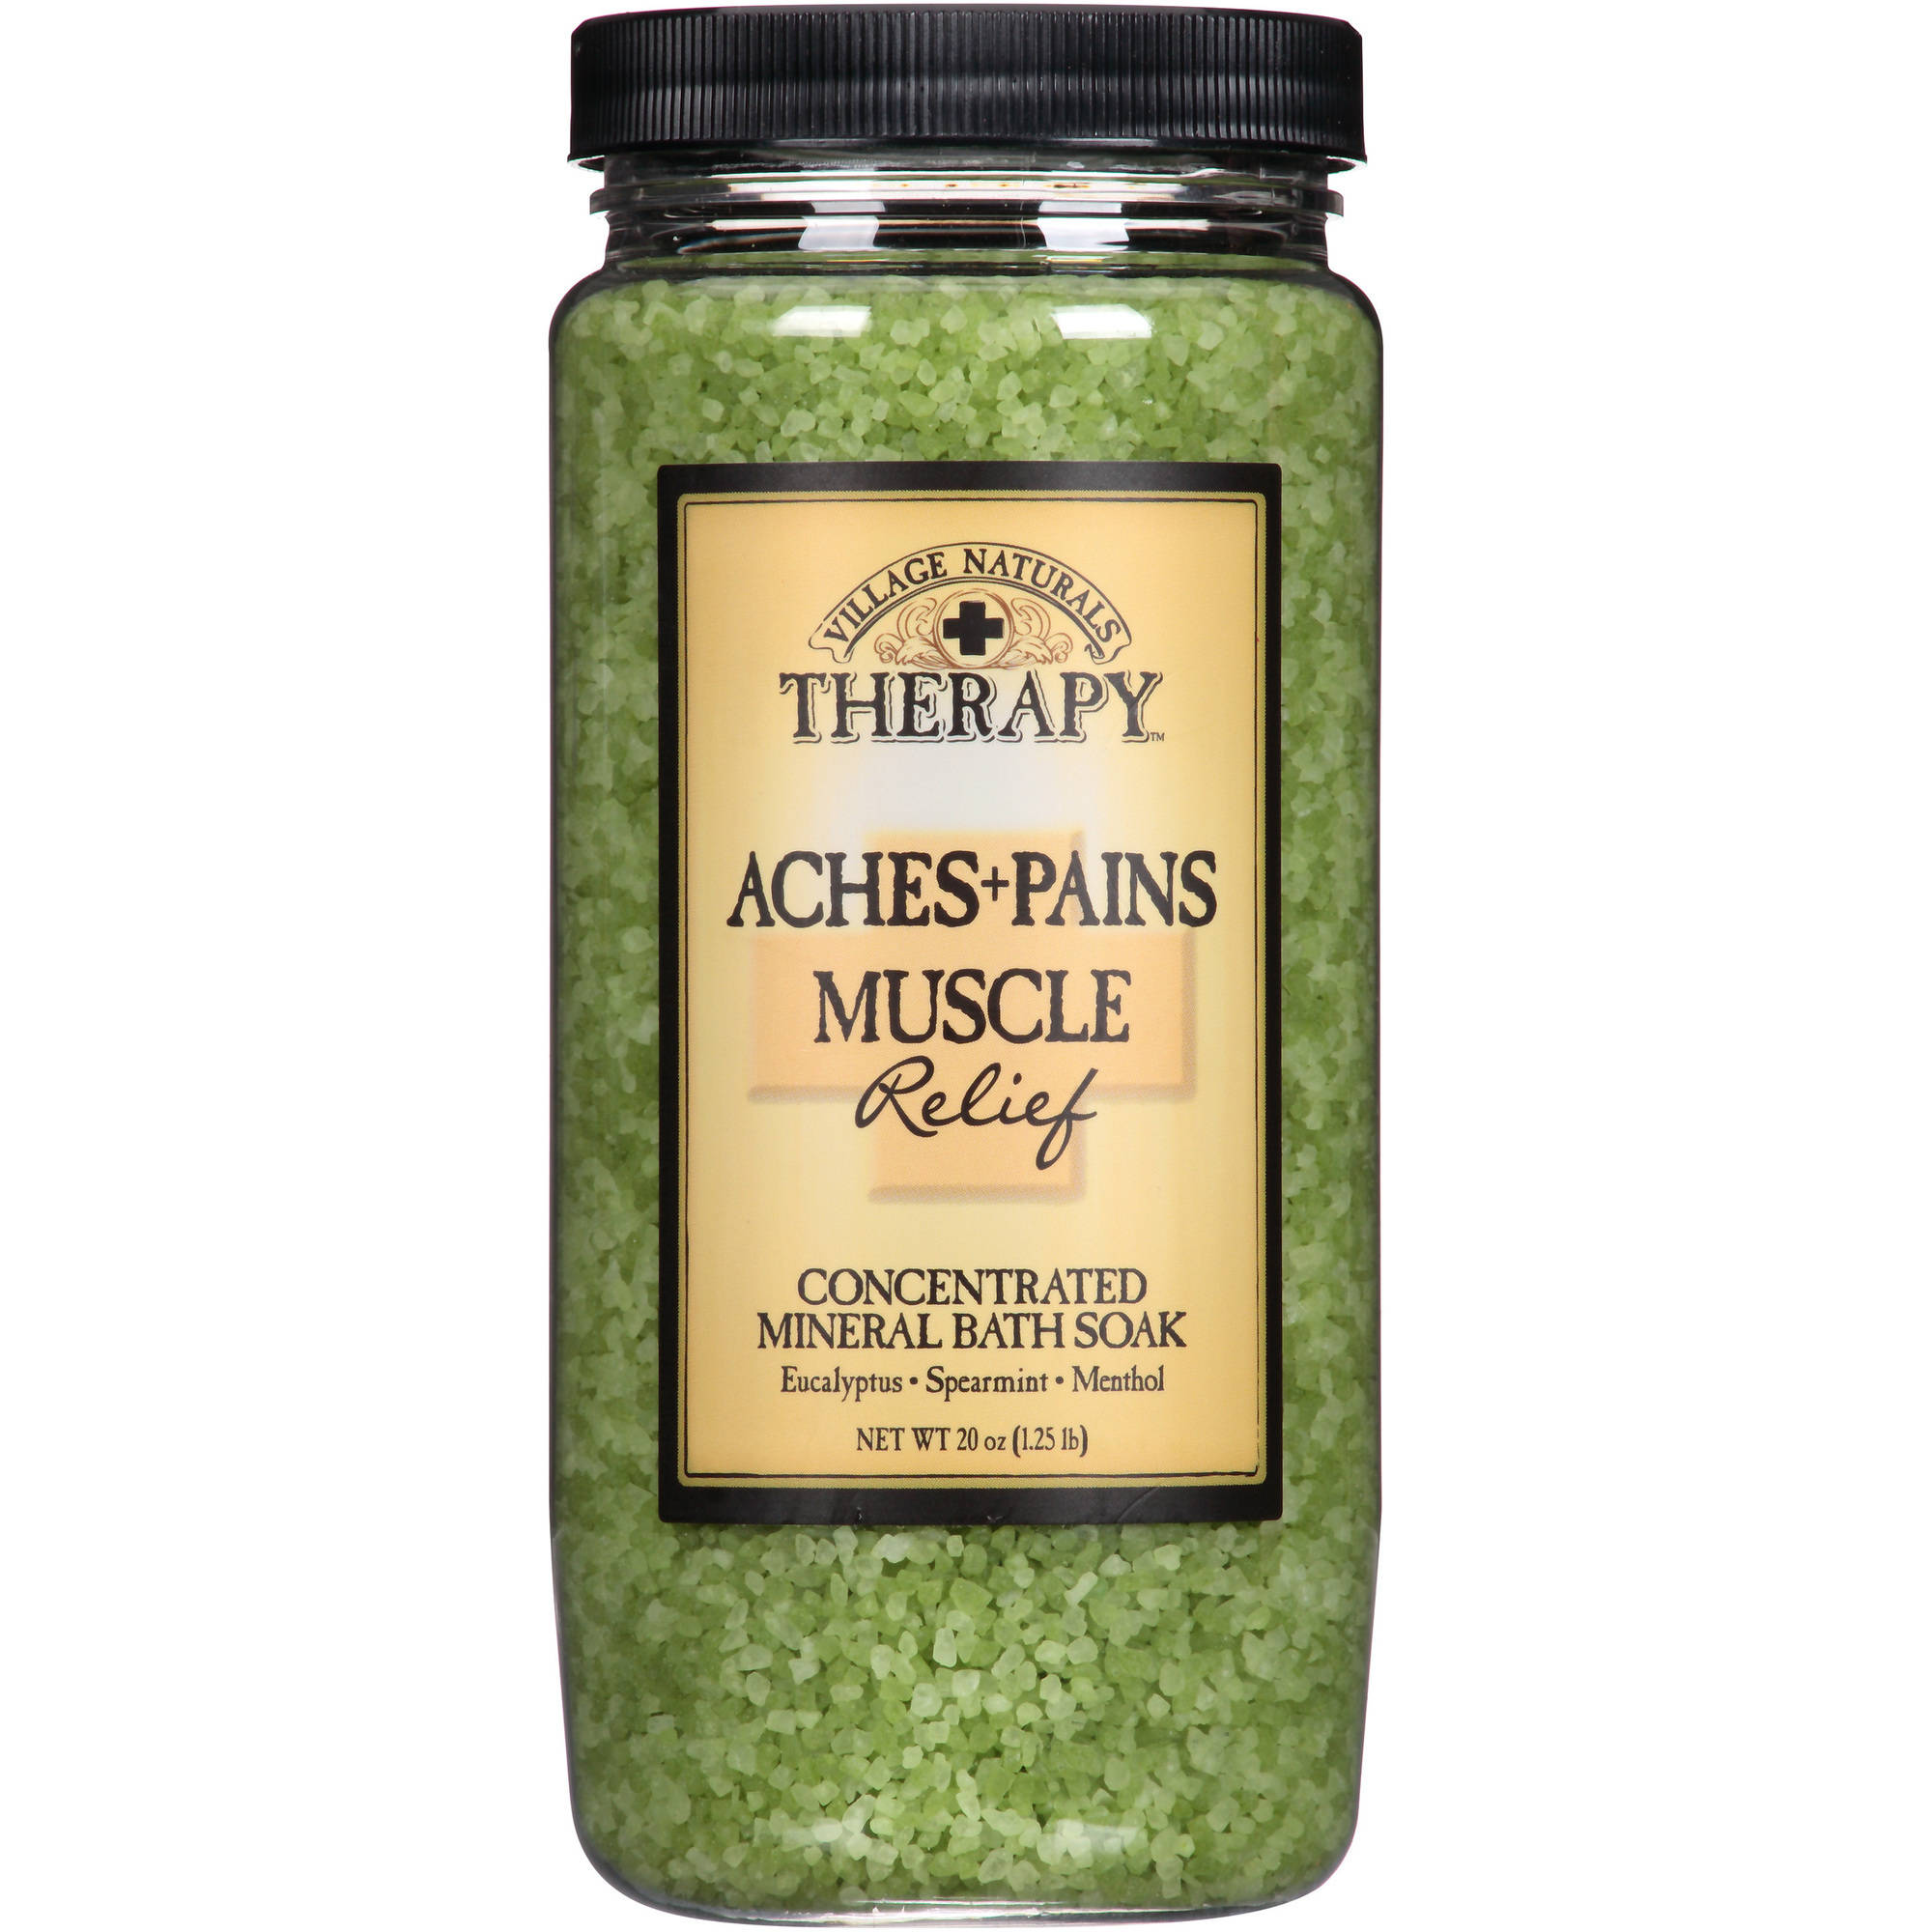 Village Naturals Therapy Aches & Pains Muscle Relief Concentrated Mineral Bath Soak, 20 fl oz